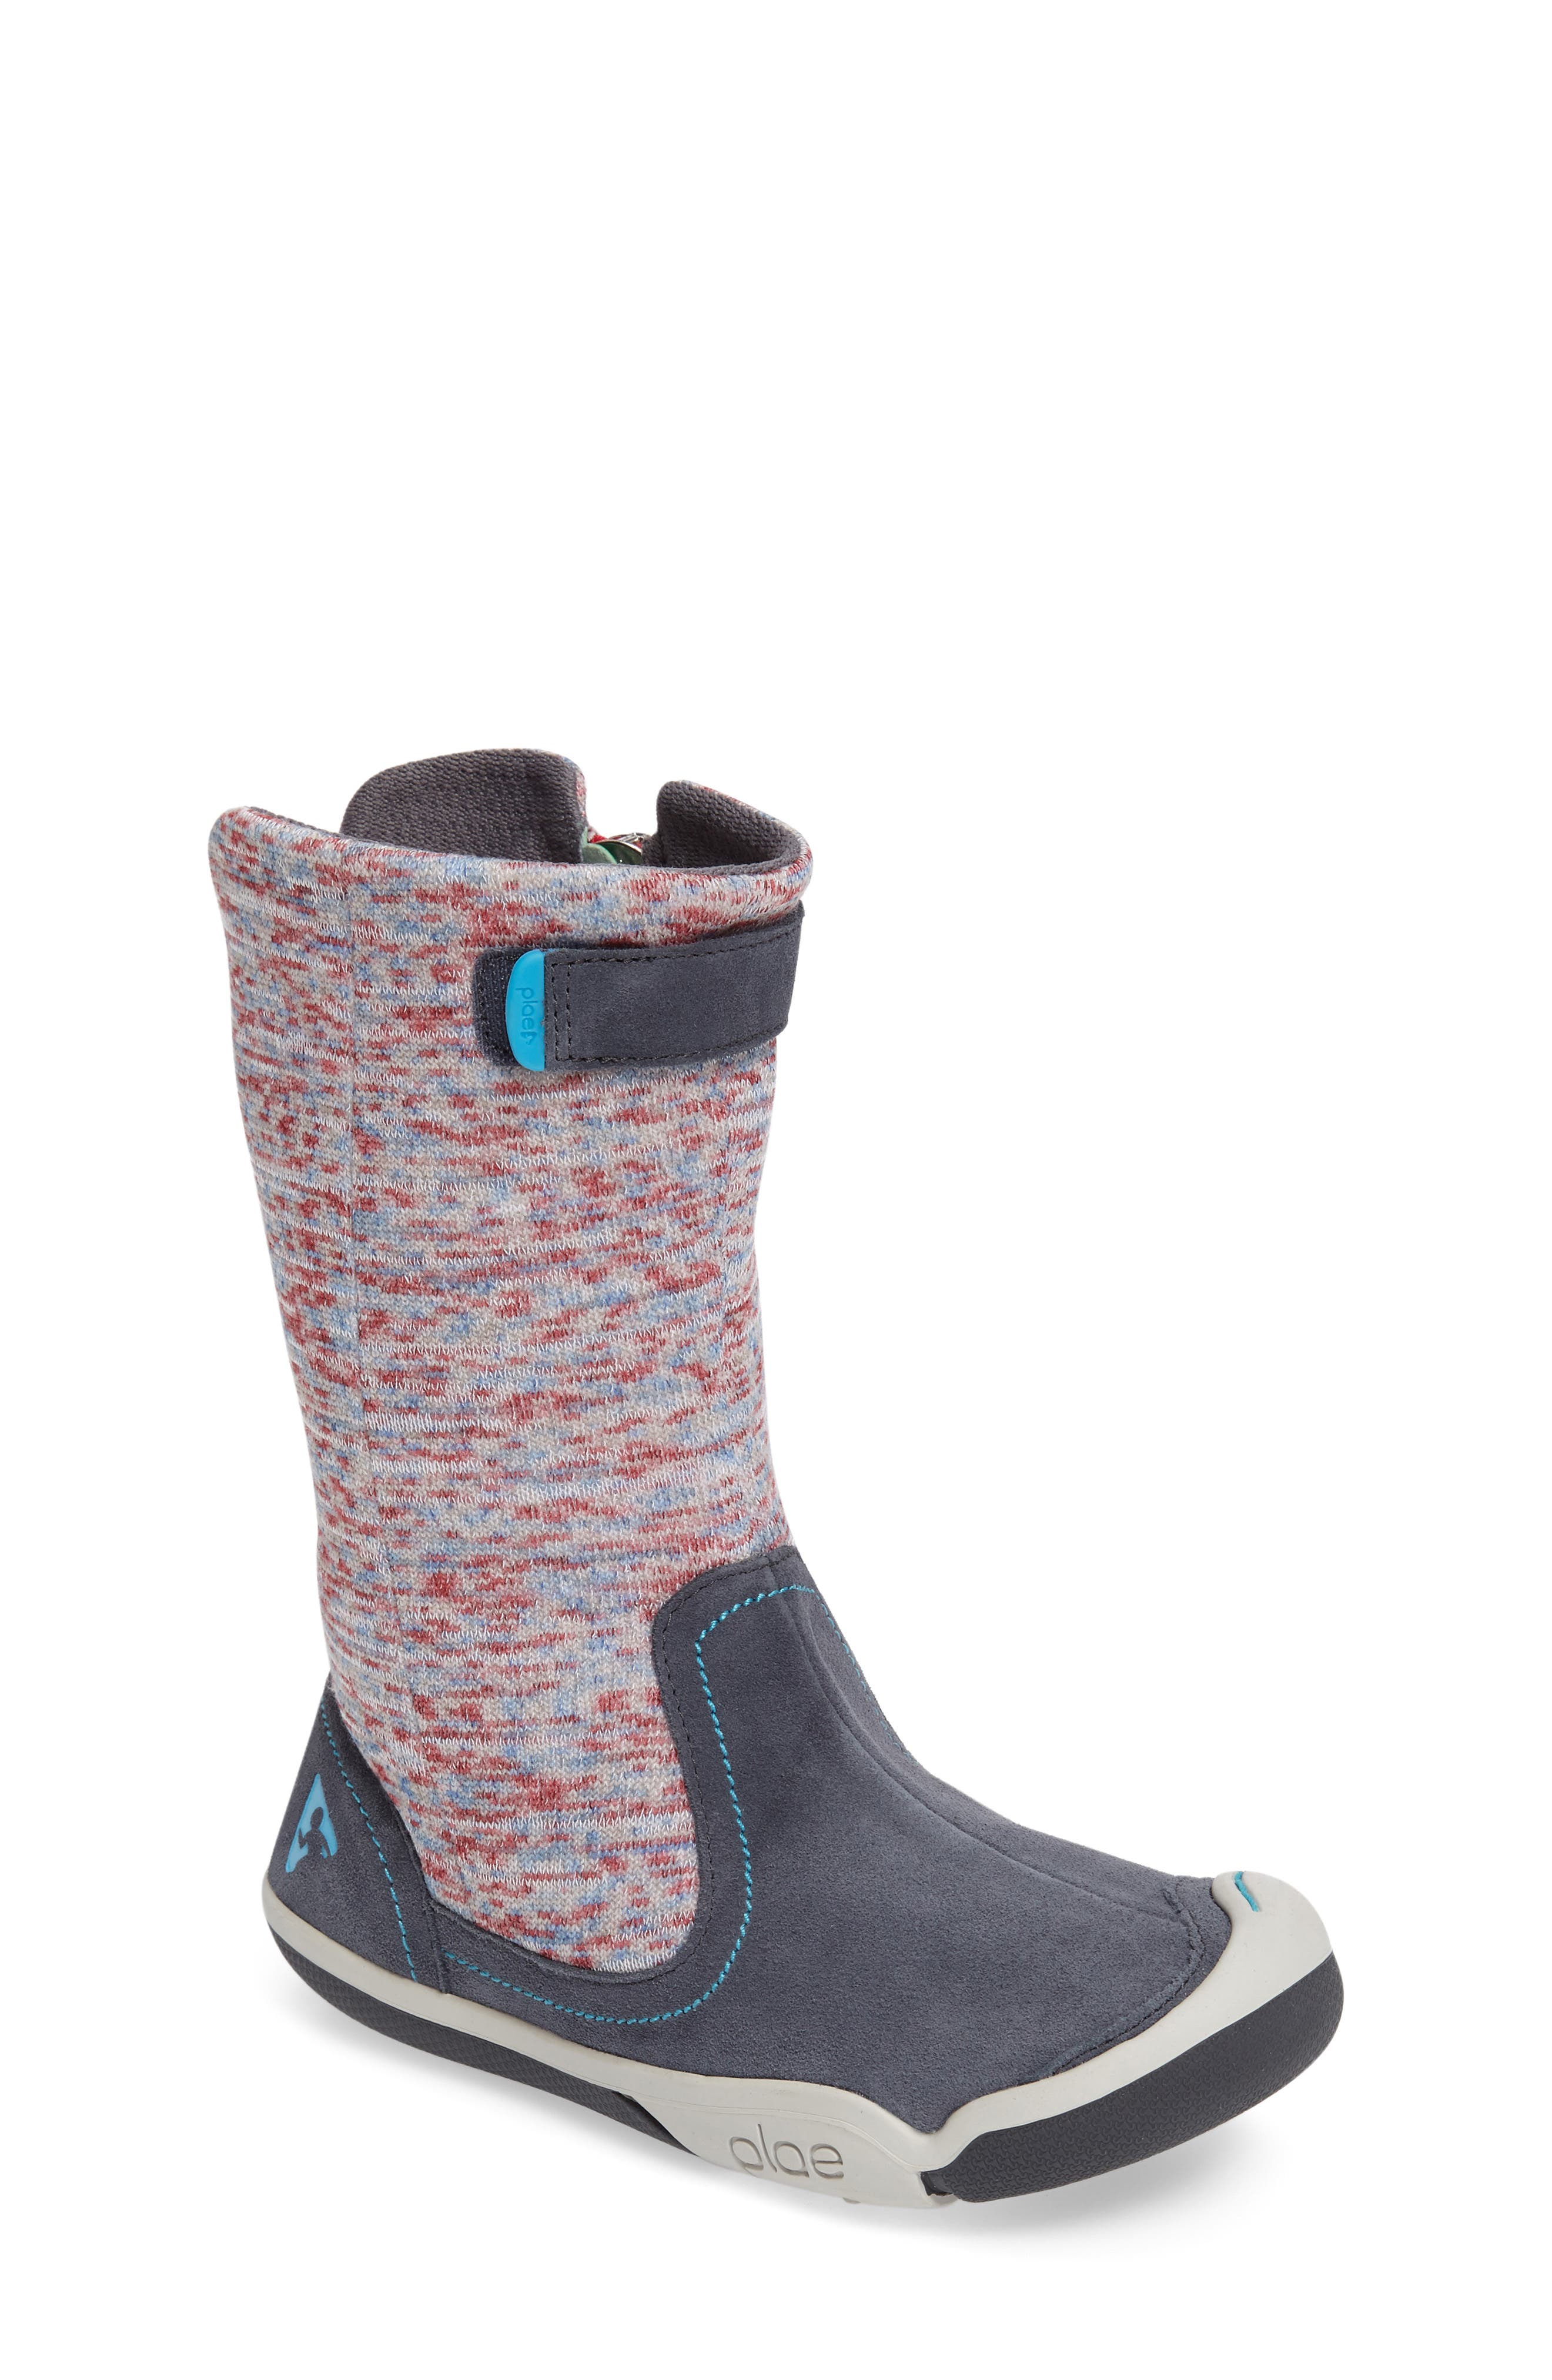 PLAE Claire Customizable Boot (Toddler, Little Kid & Big Kid)